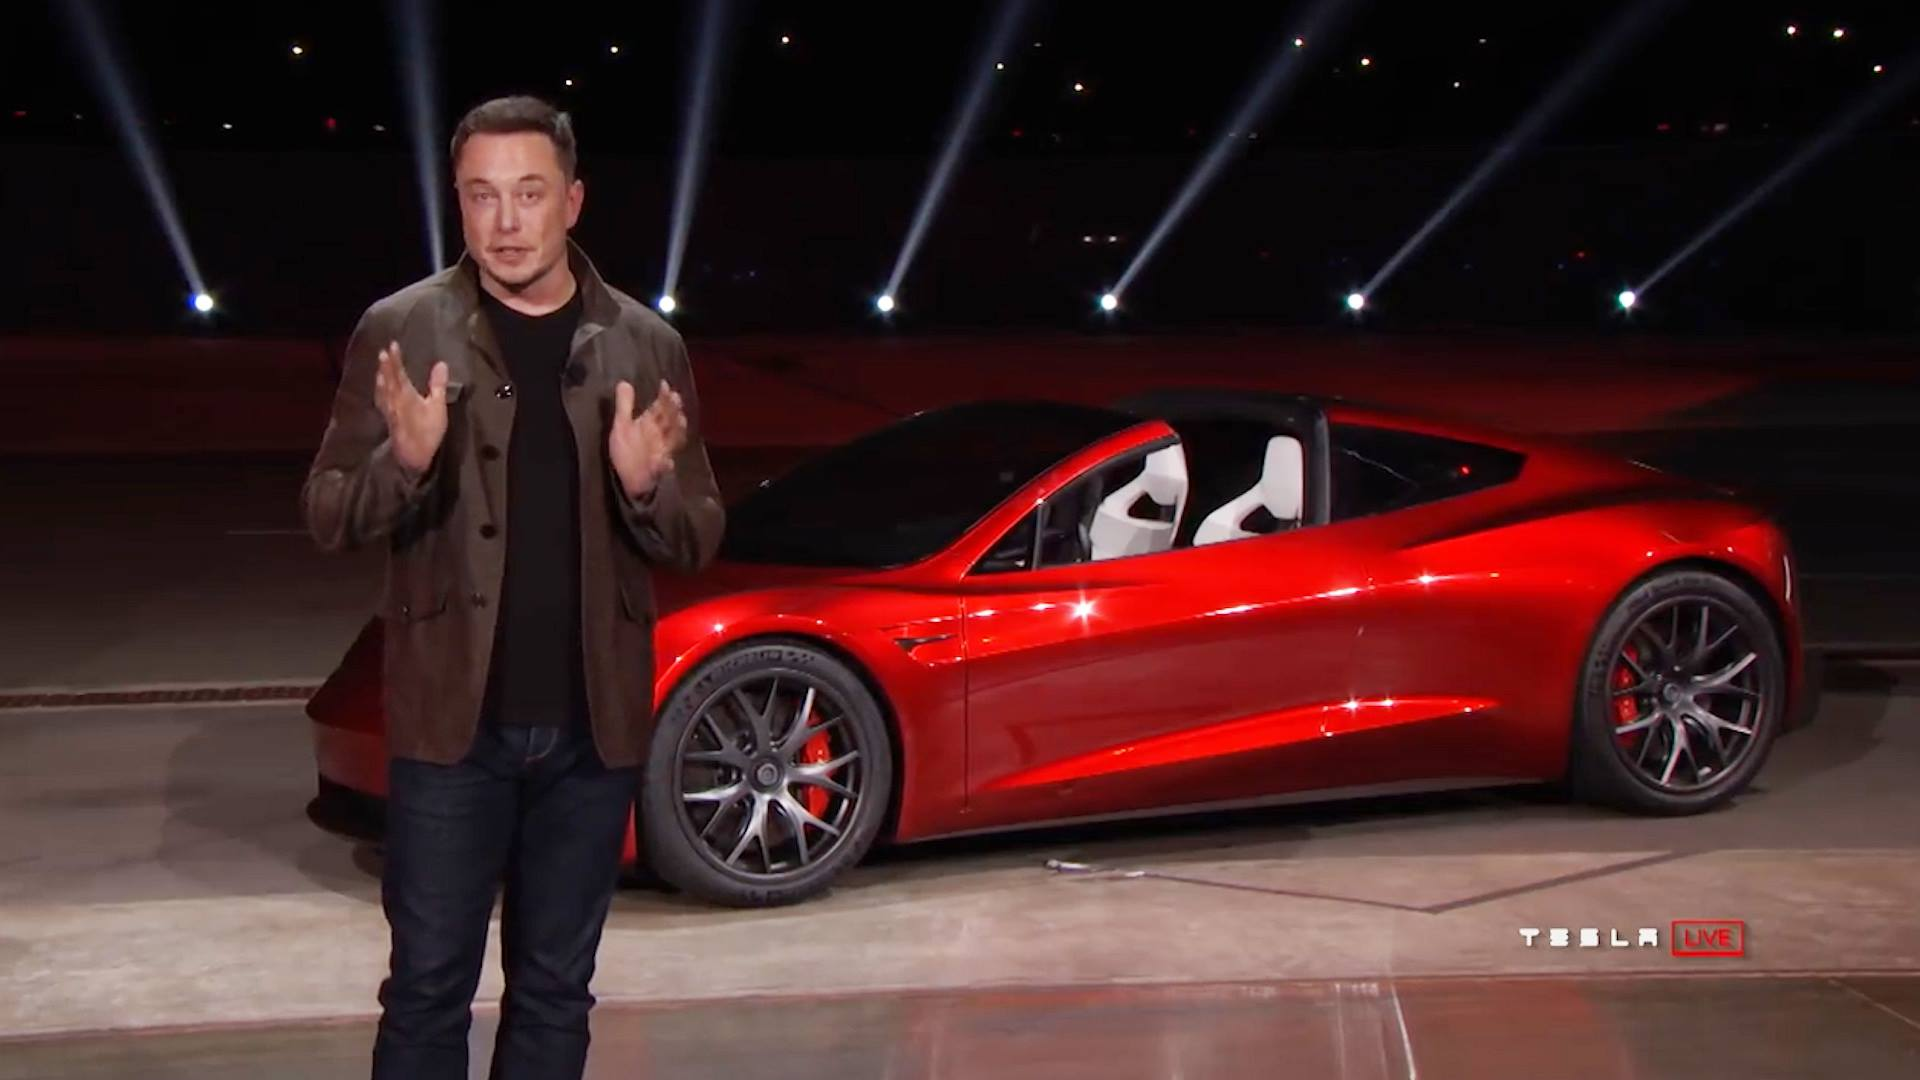 The Elon Musk You Probably Don't Know